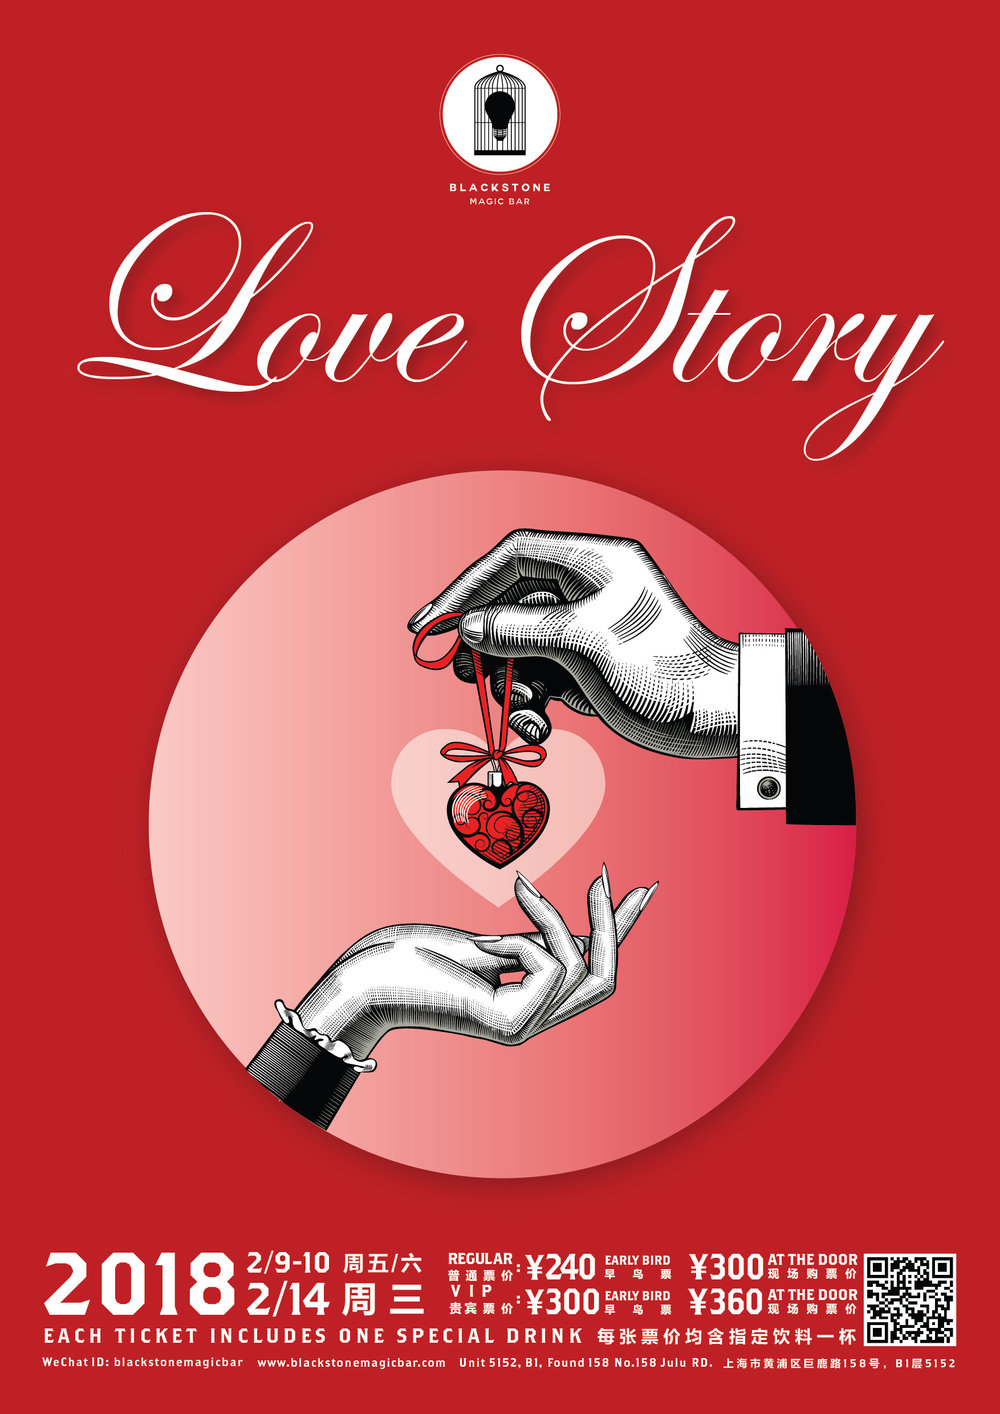 BLACKSTONE LIVE - 情人节特别演出《LOVE STORY》 BY Tony Peng